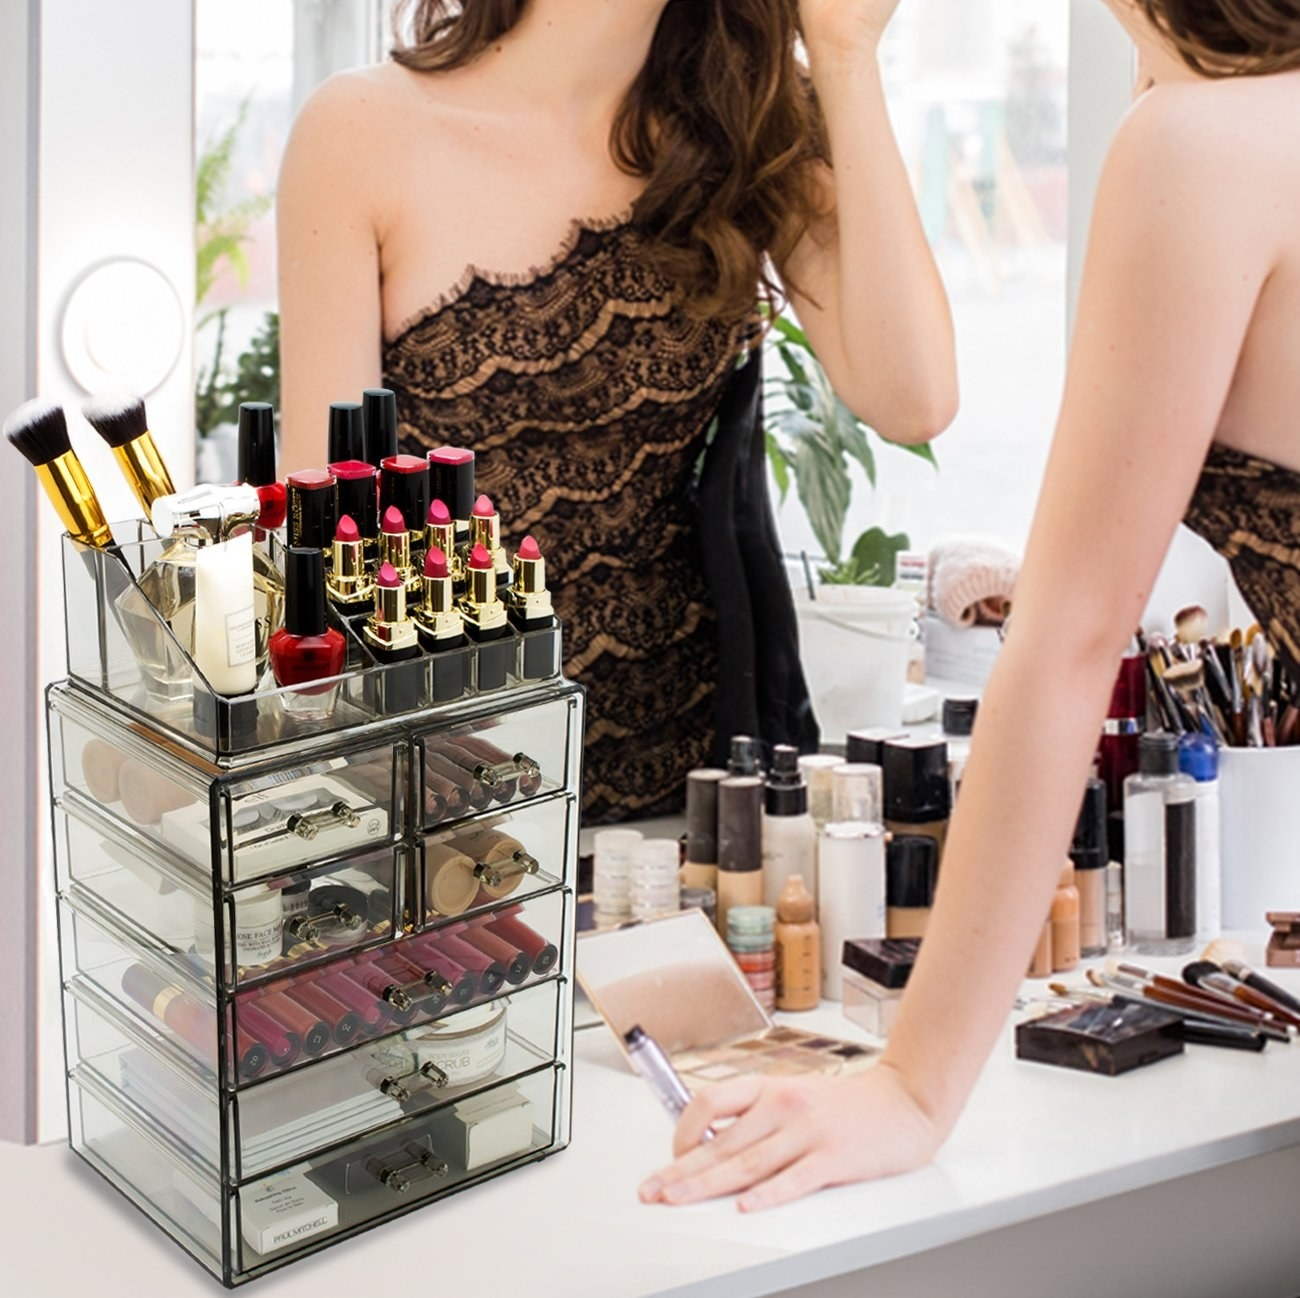 The organizer on a counter holding lipsticks, brushes, lashes, and other makeup